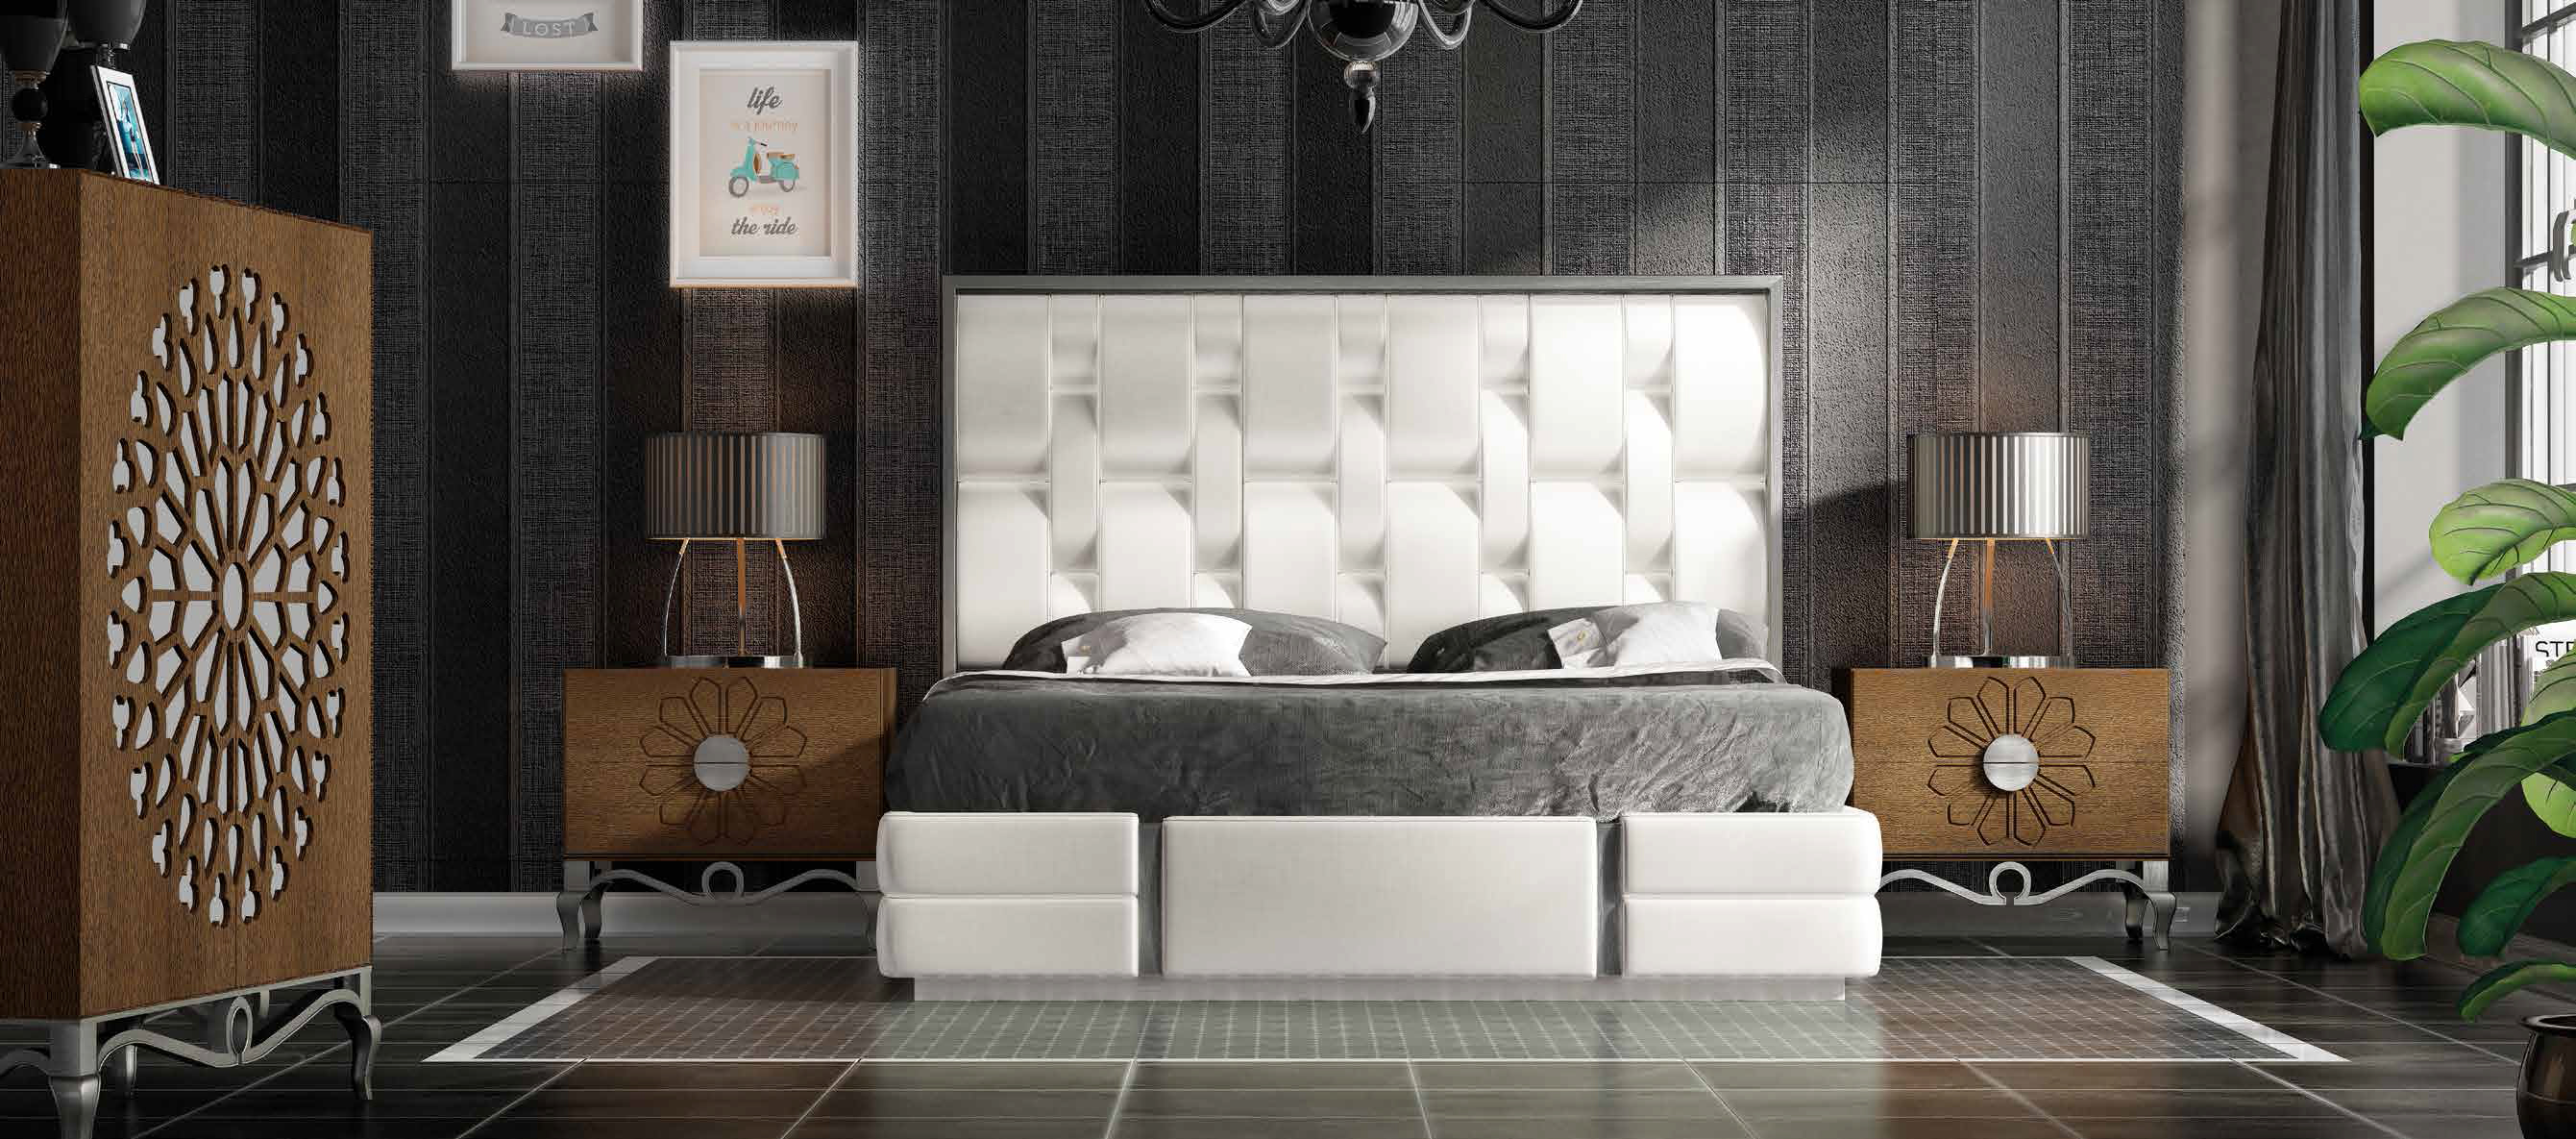 Brands Franco Furniture Bedrooms vol1, Spain DOR 57